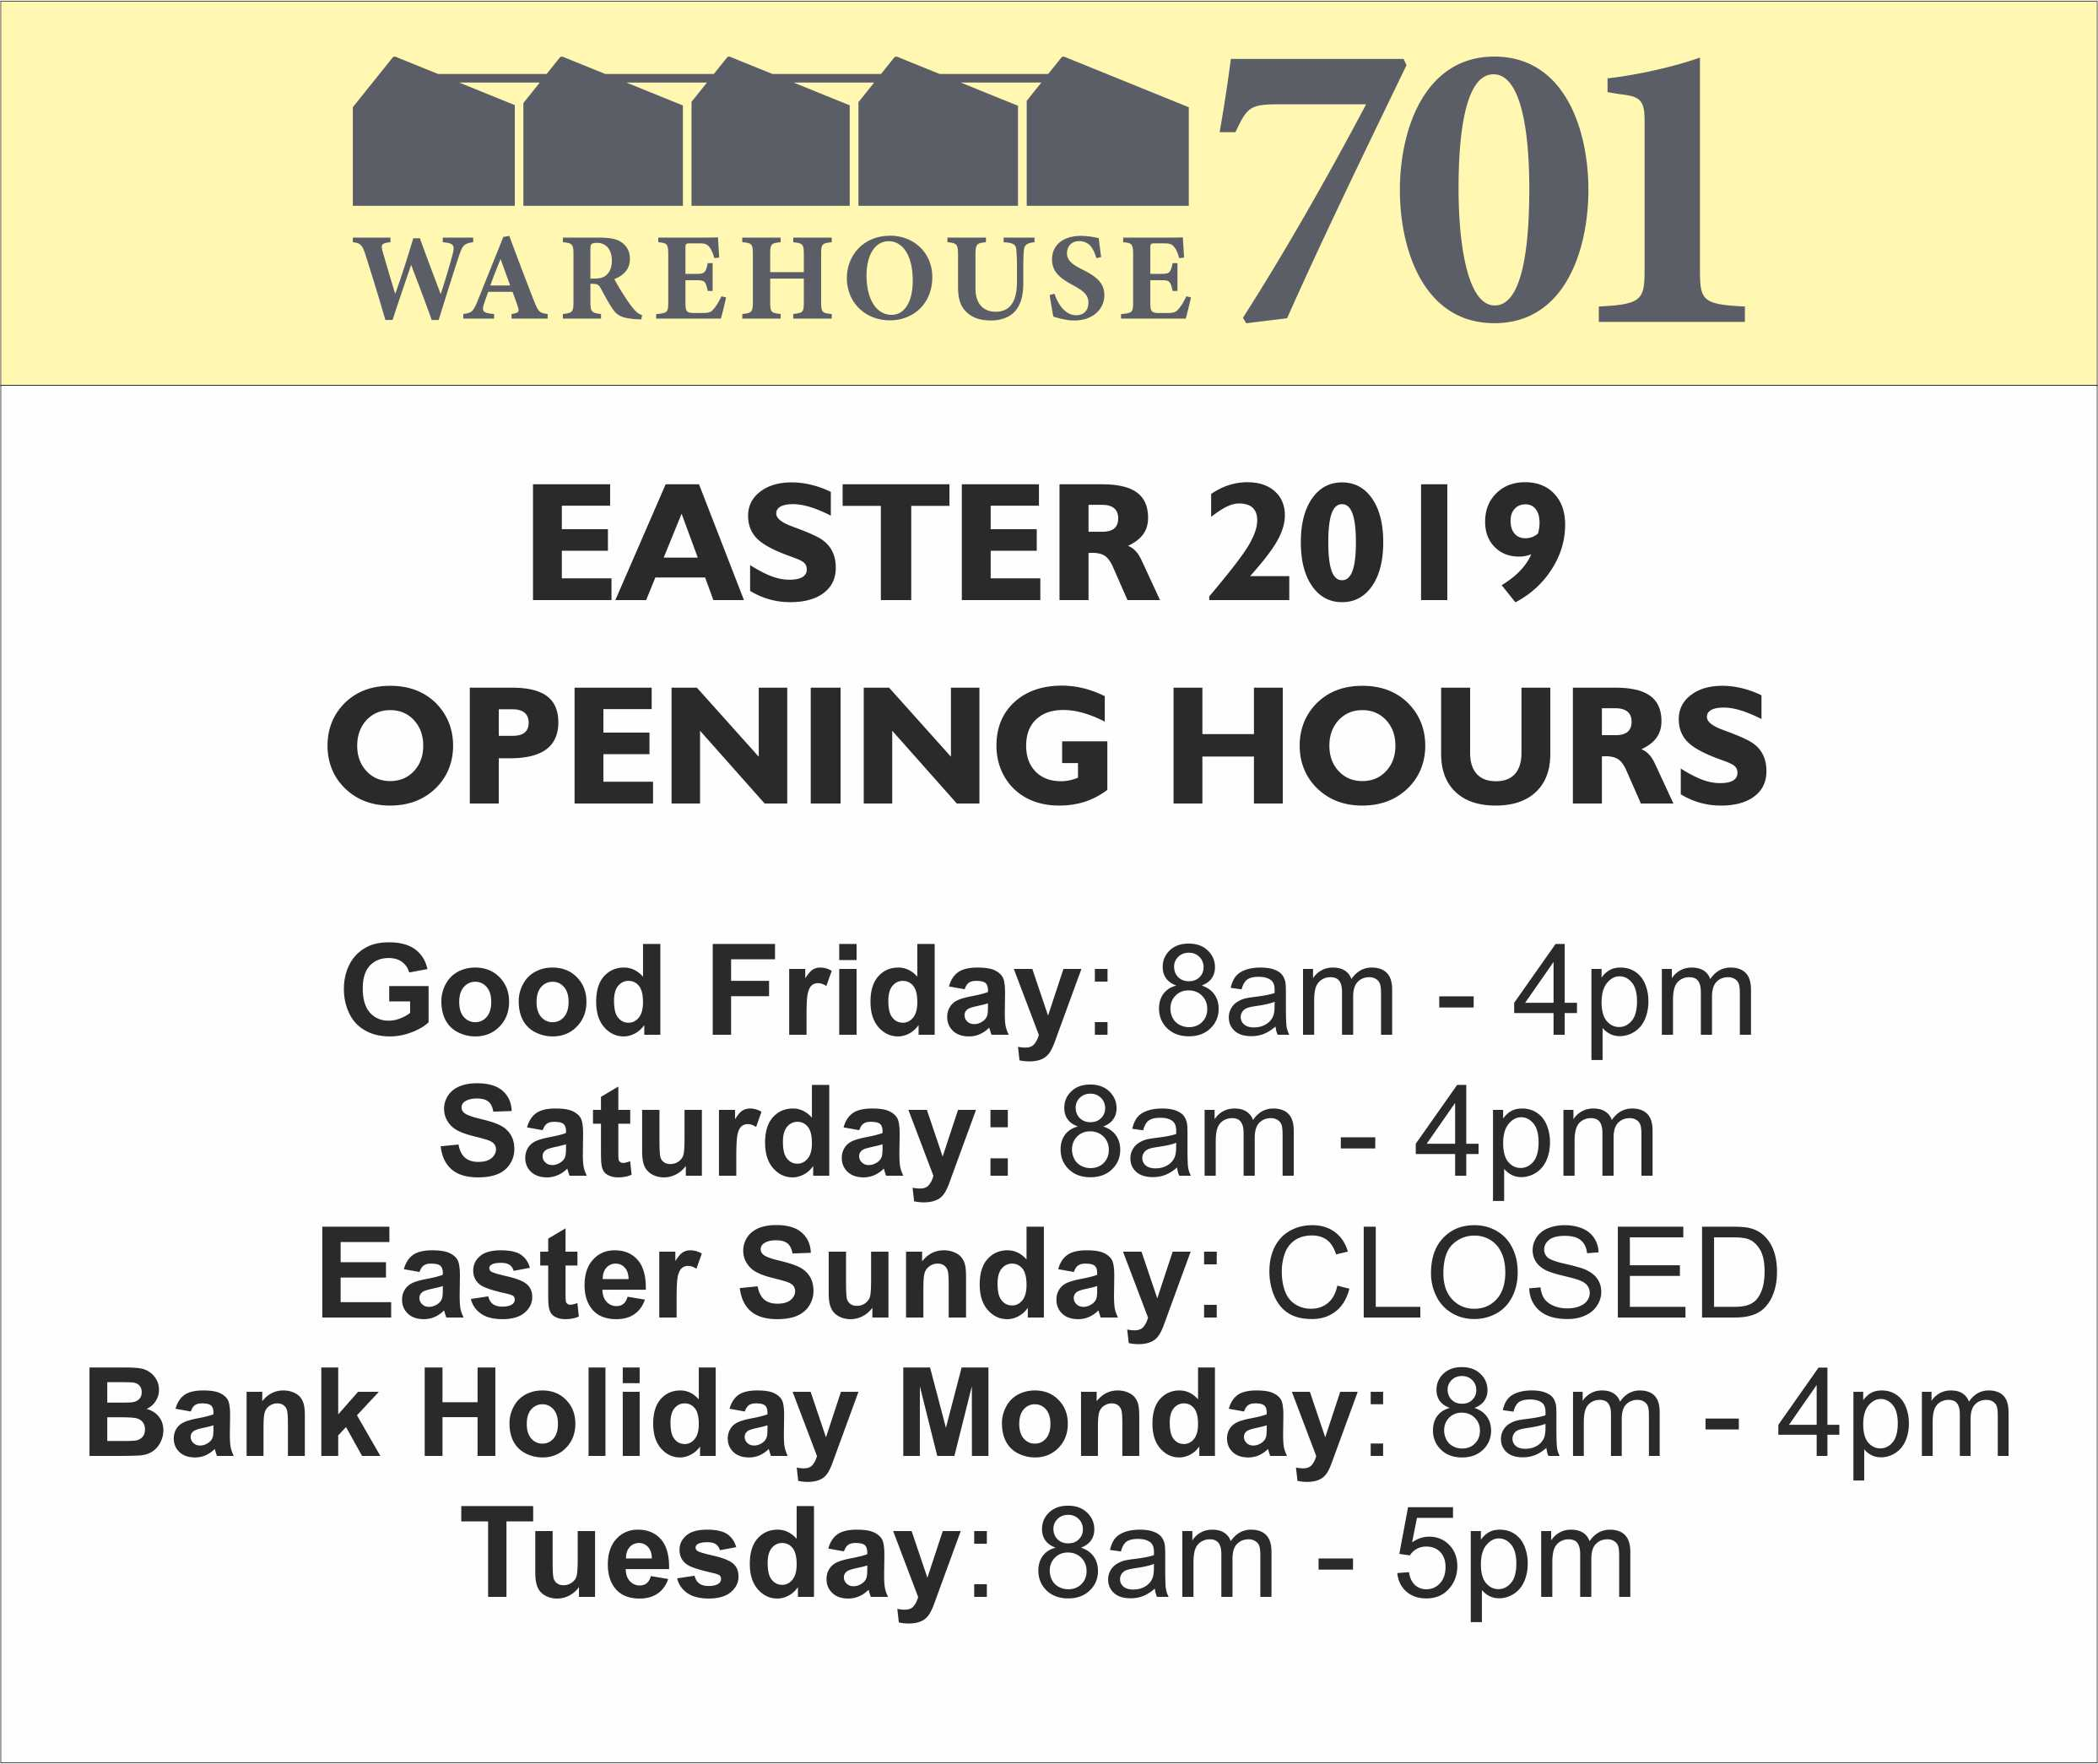 WH701 Opening Hours.jpg